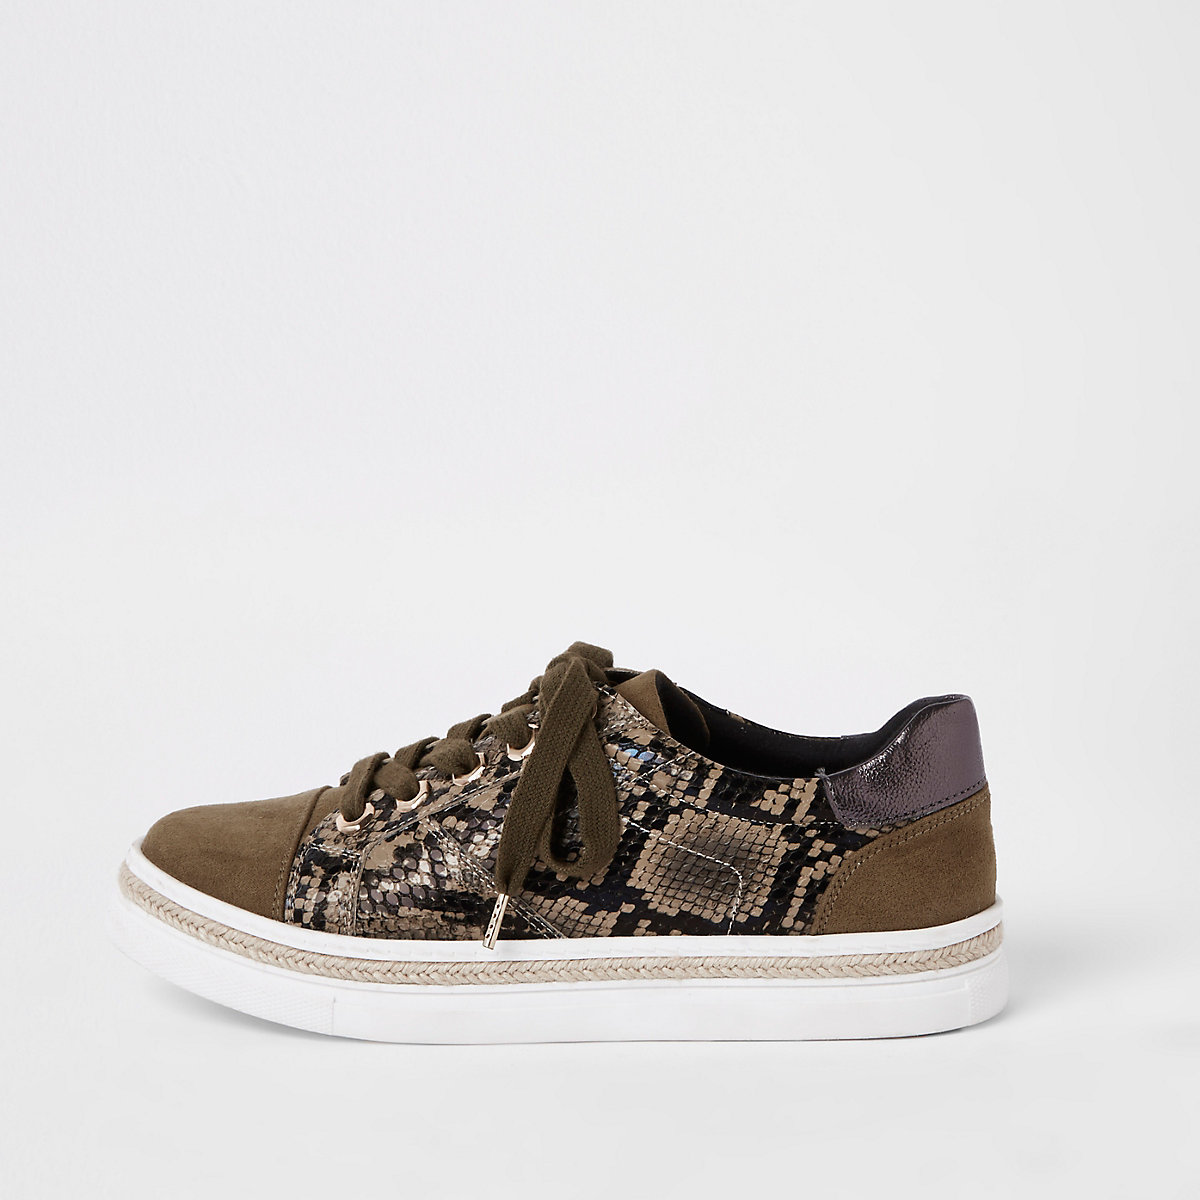 Khaki snake print lace-up sneakers